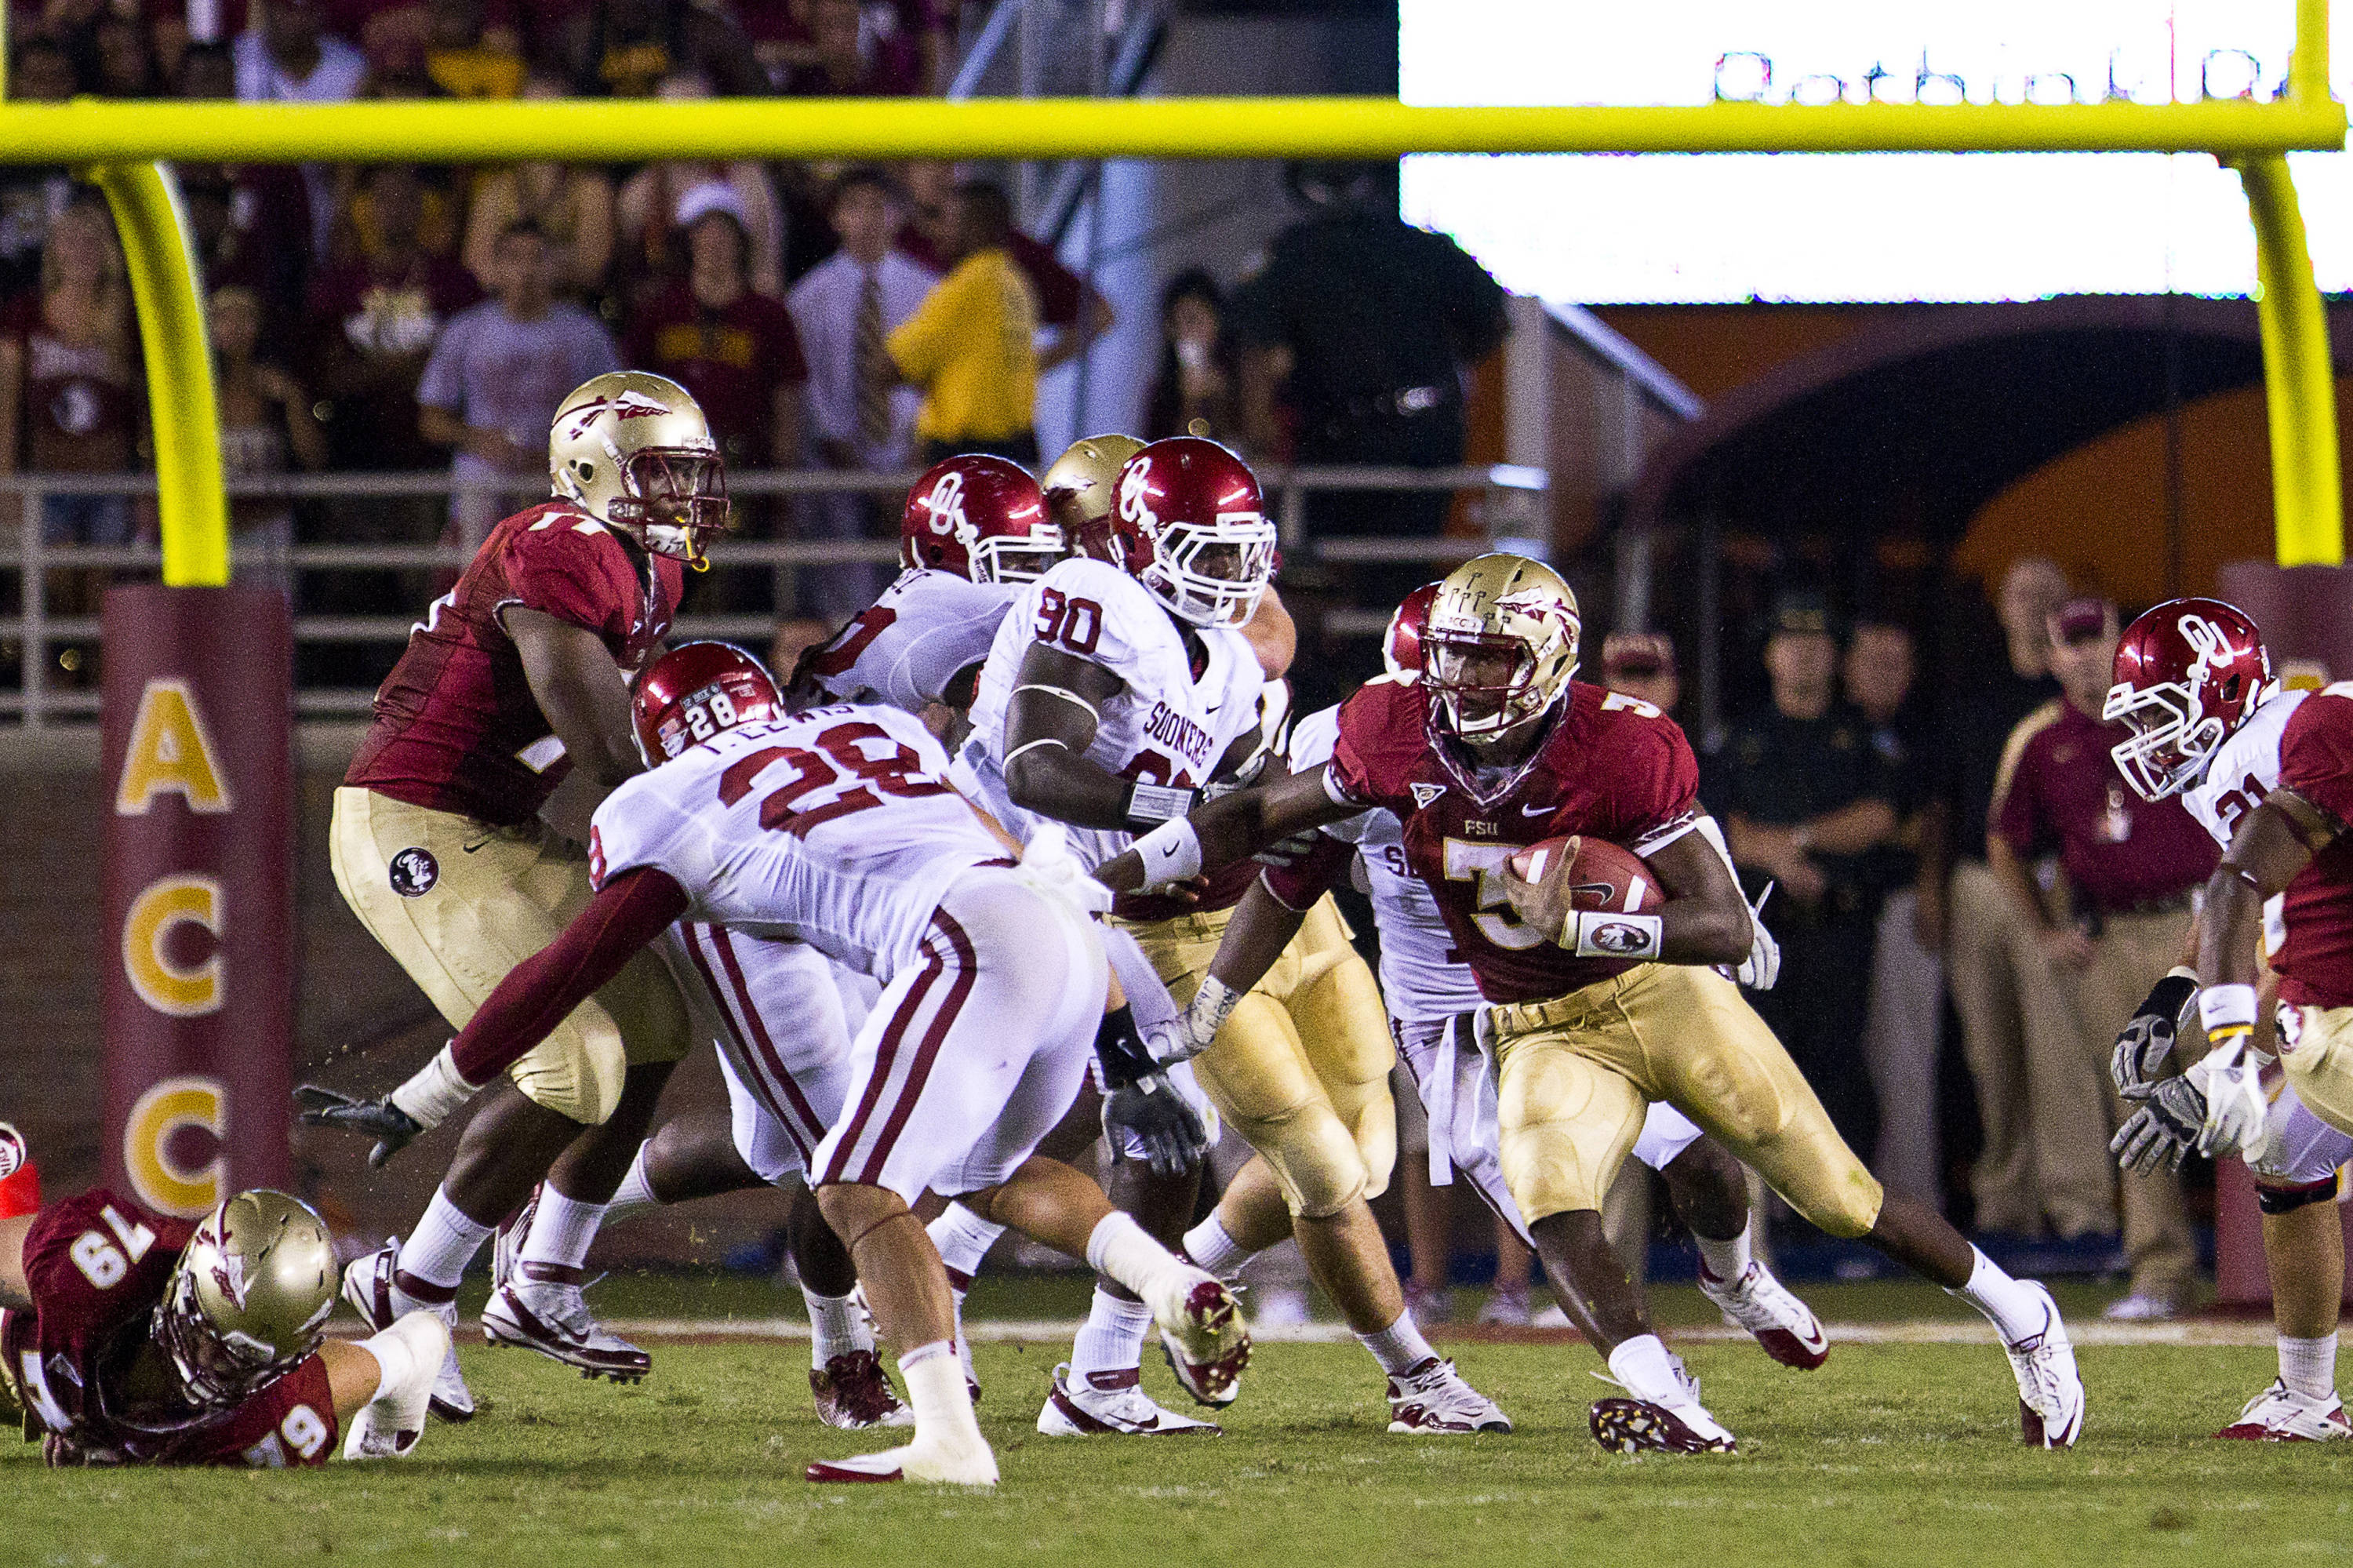 EJ Manuel (3) runs the ball during the game against Oklahoma on September 17, 2011.